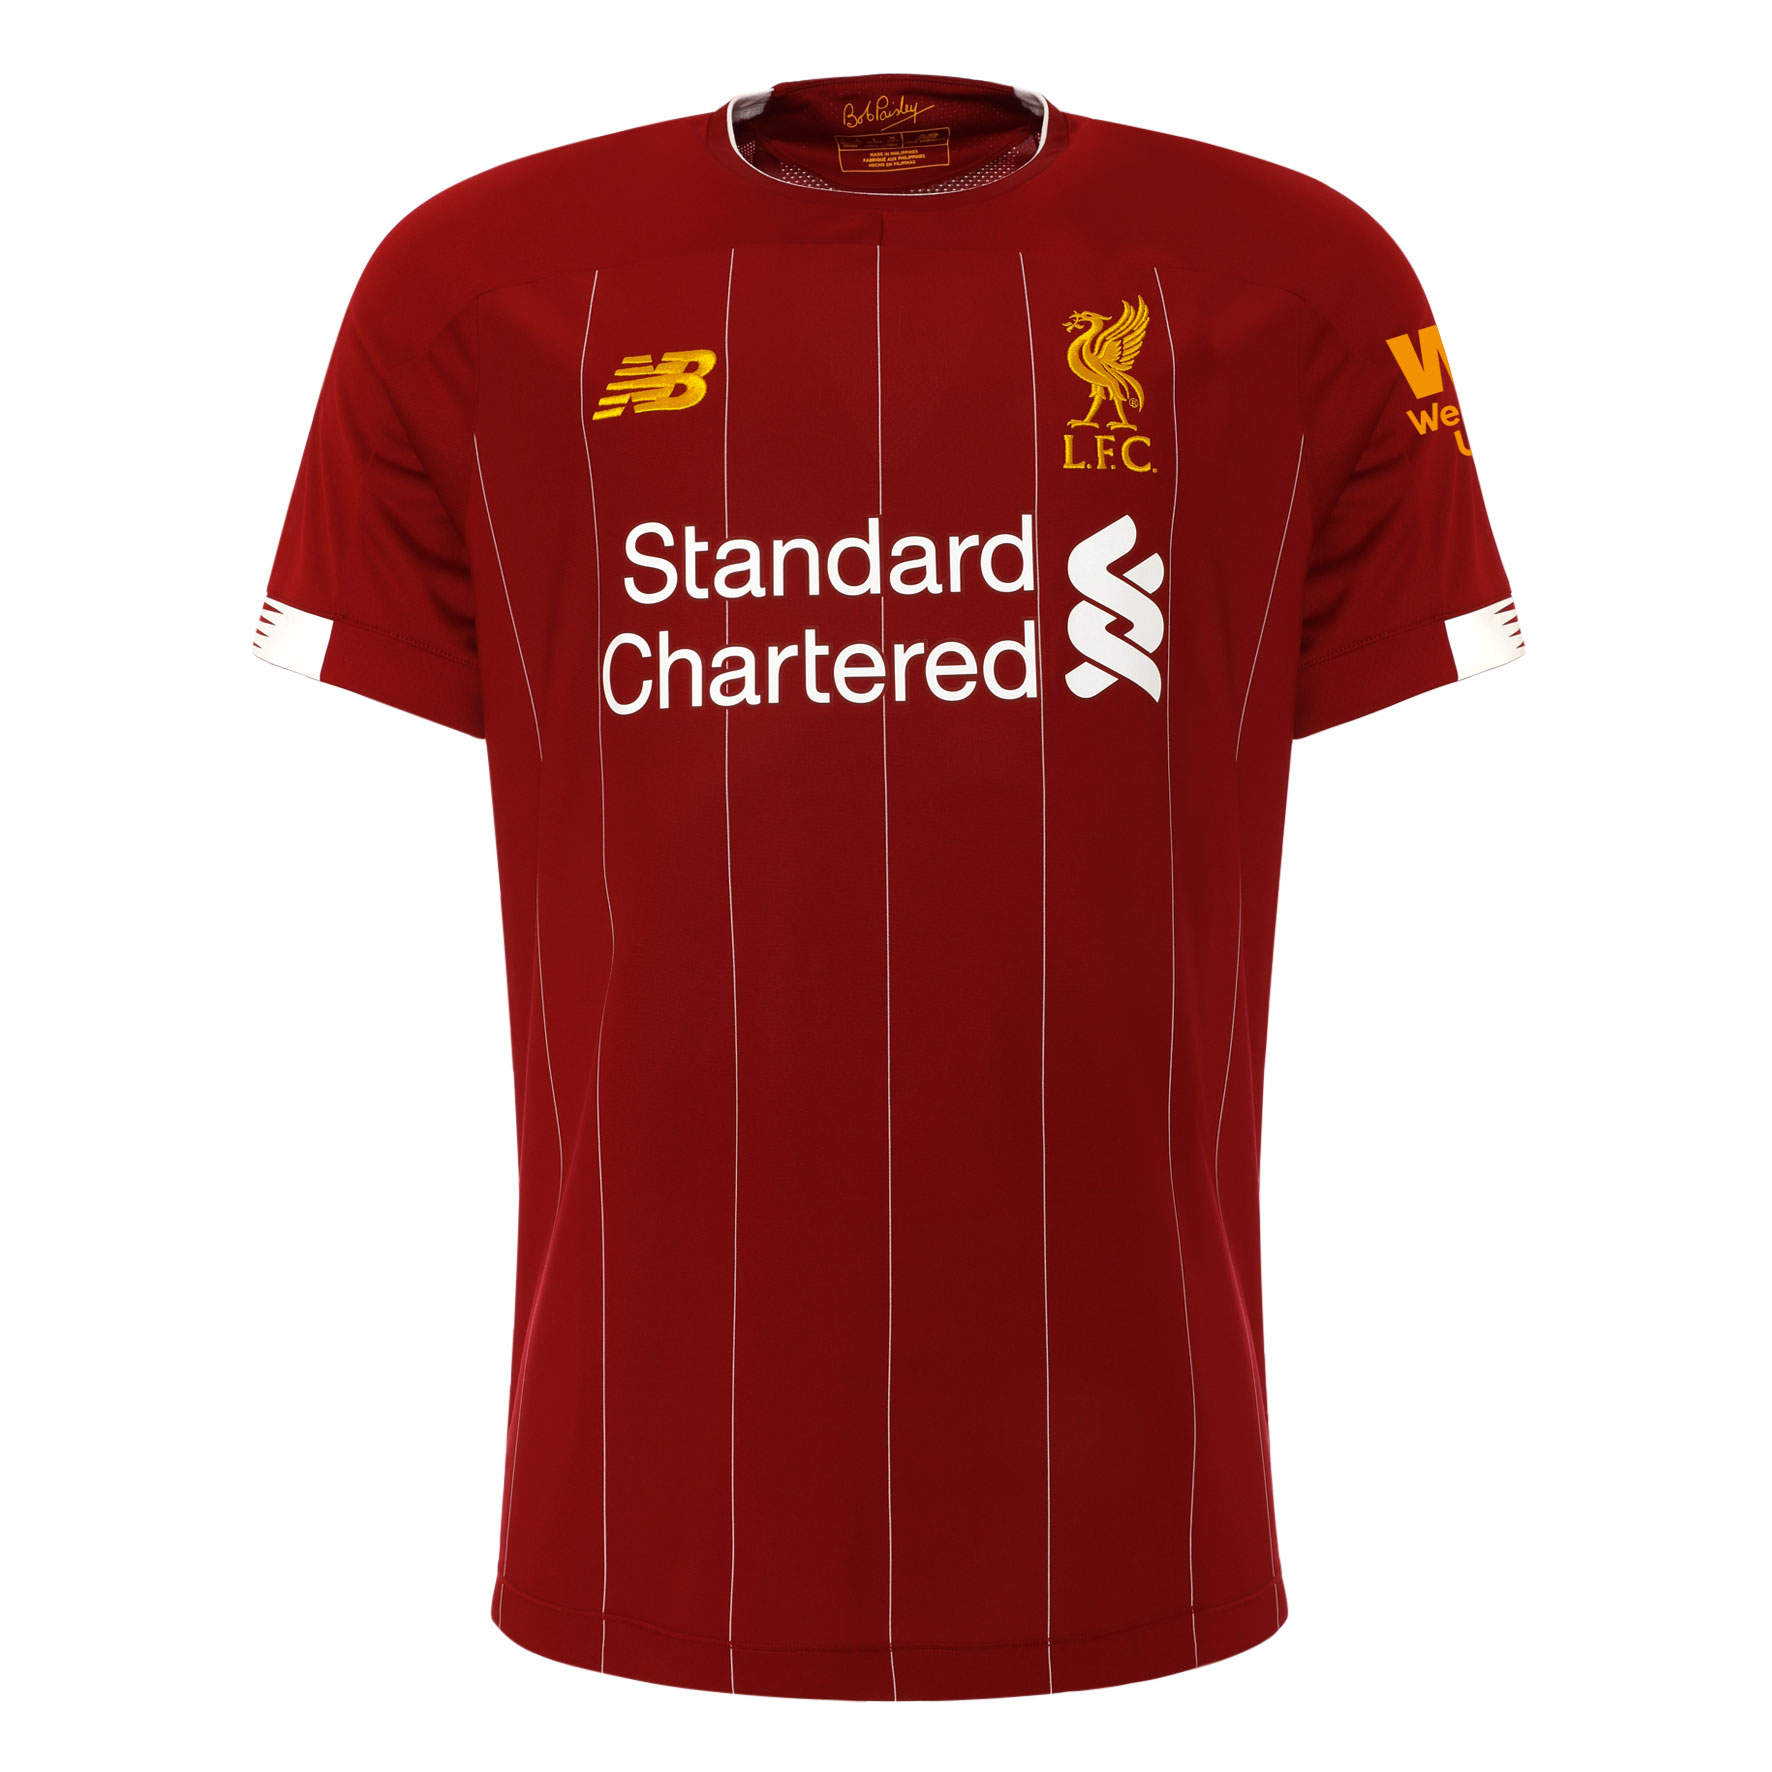 "4733303b479 ""This year's home kit is incredibly strong,"" said Reds captain Jordan  Henderson. ""I'm really looking forward to wearing it every time we play at  our beloved ..."